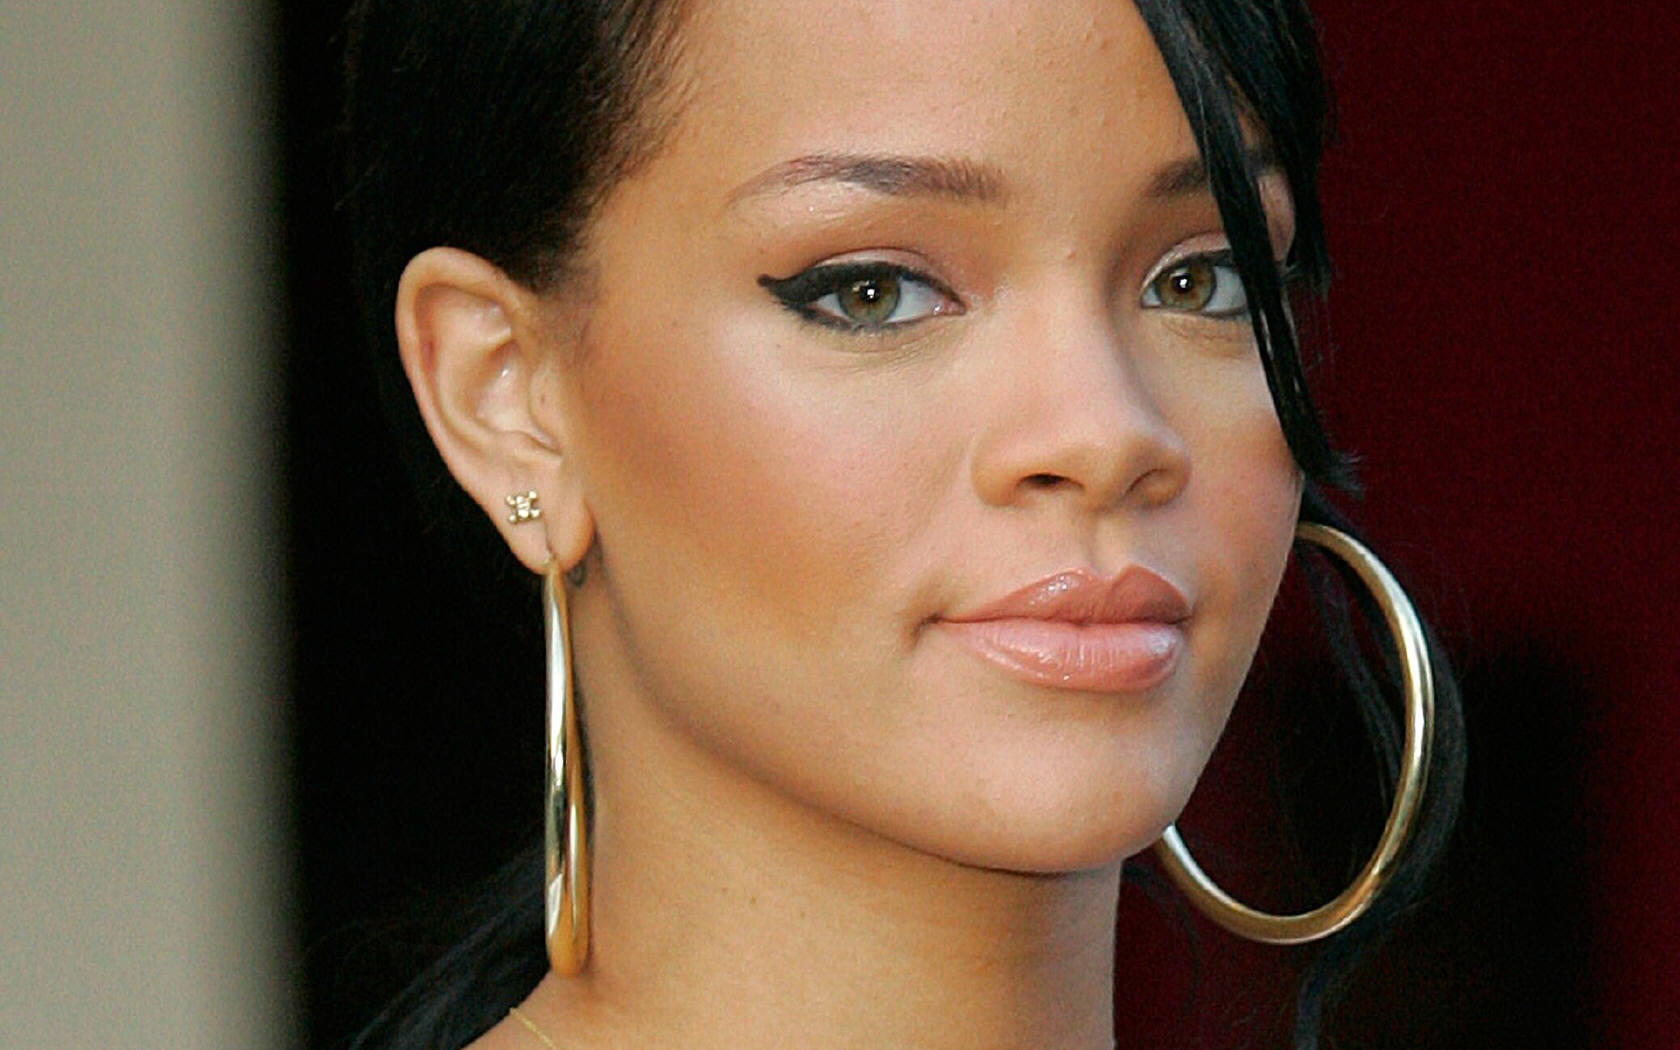 35+ Cool And Modish Pictures Of Rihanna | HD Wallpapers , HD ...